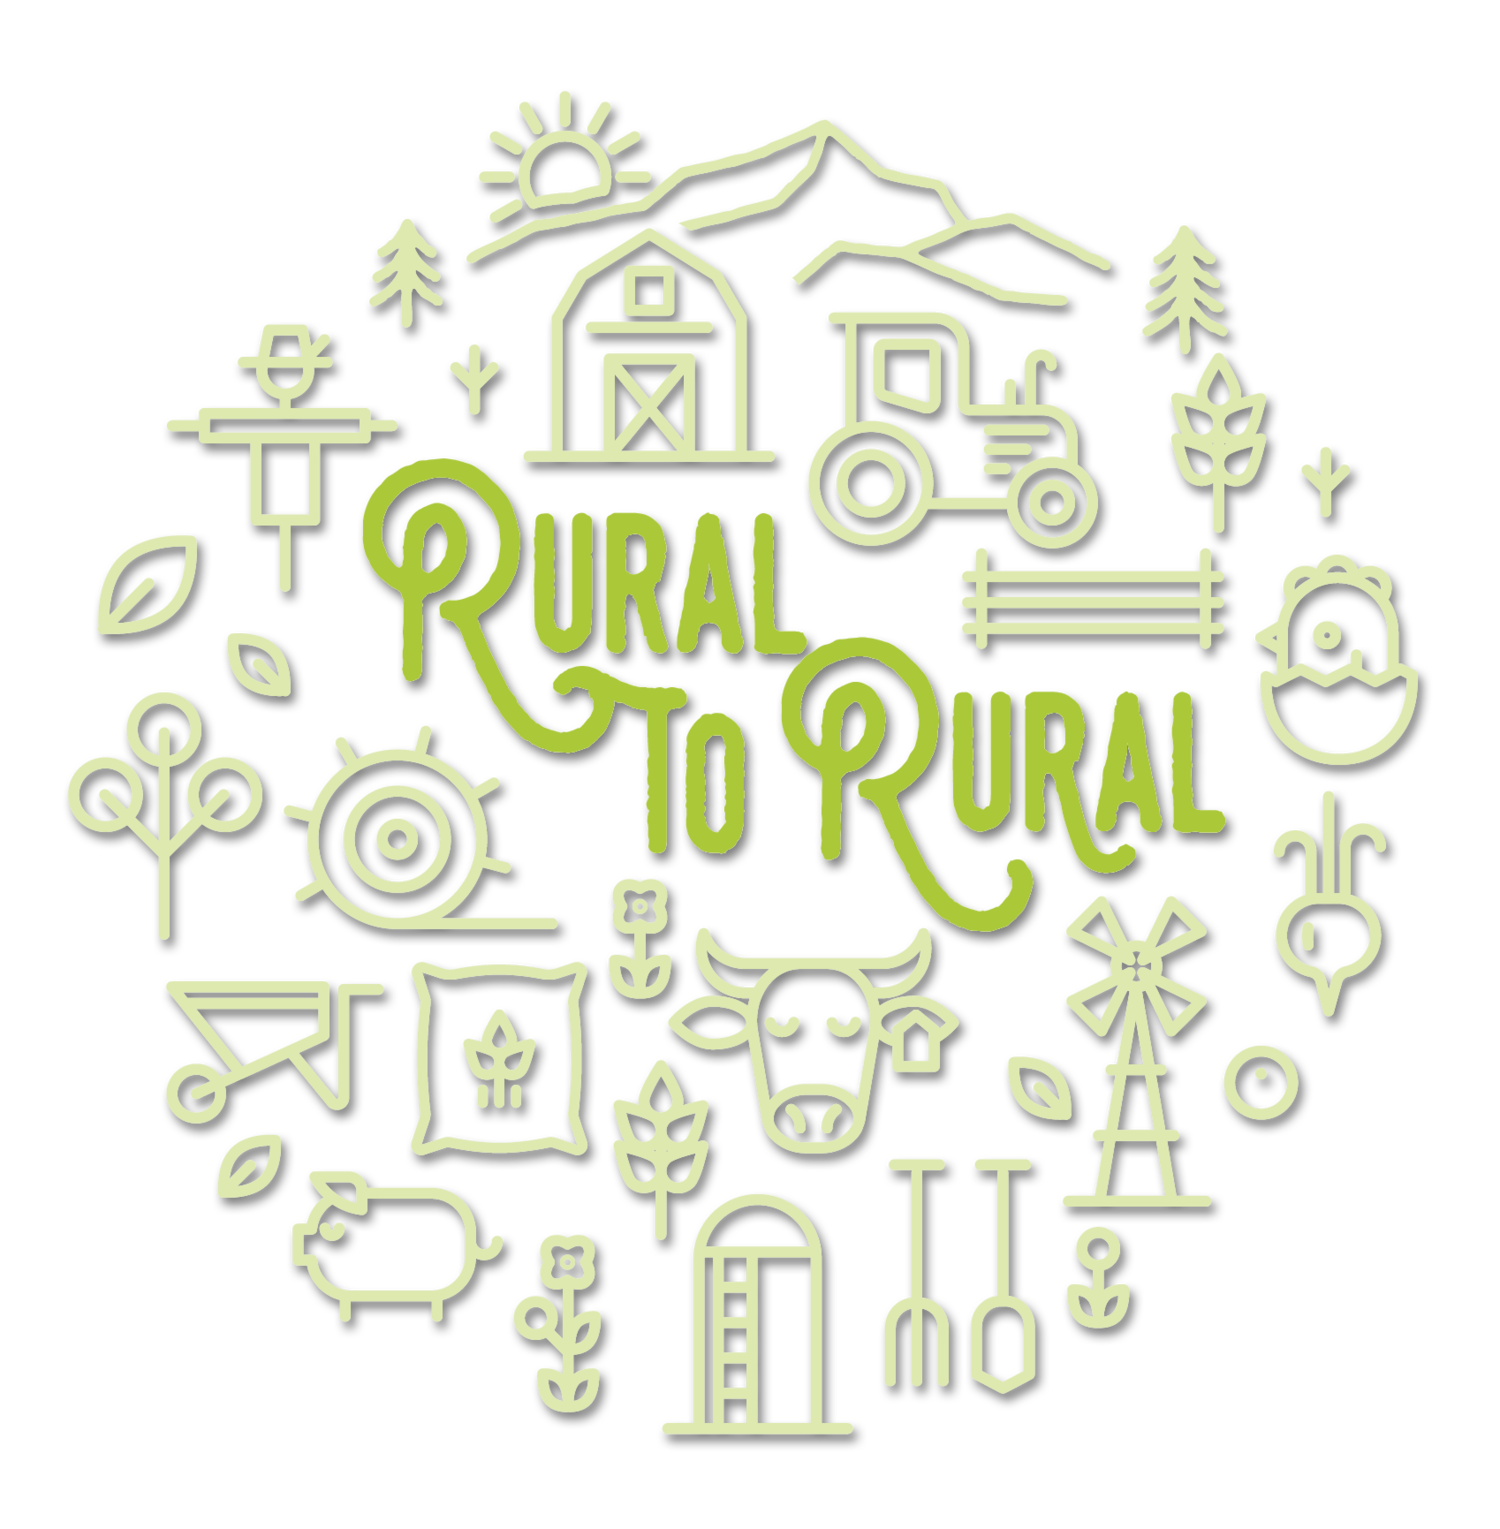 News clipart news report. Latest rural to